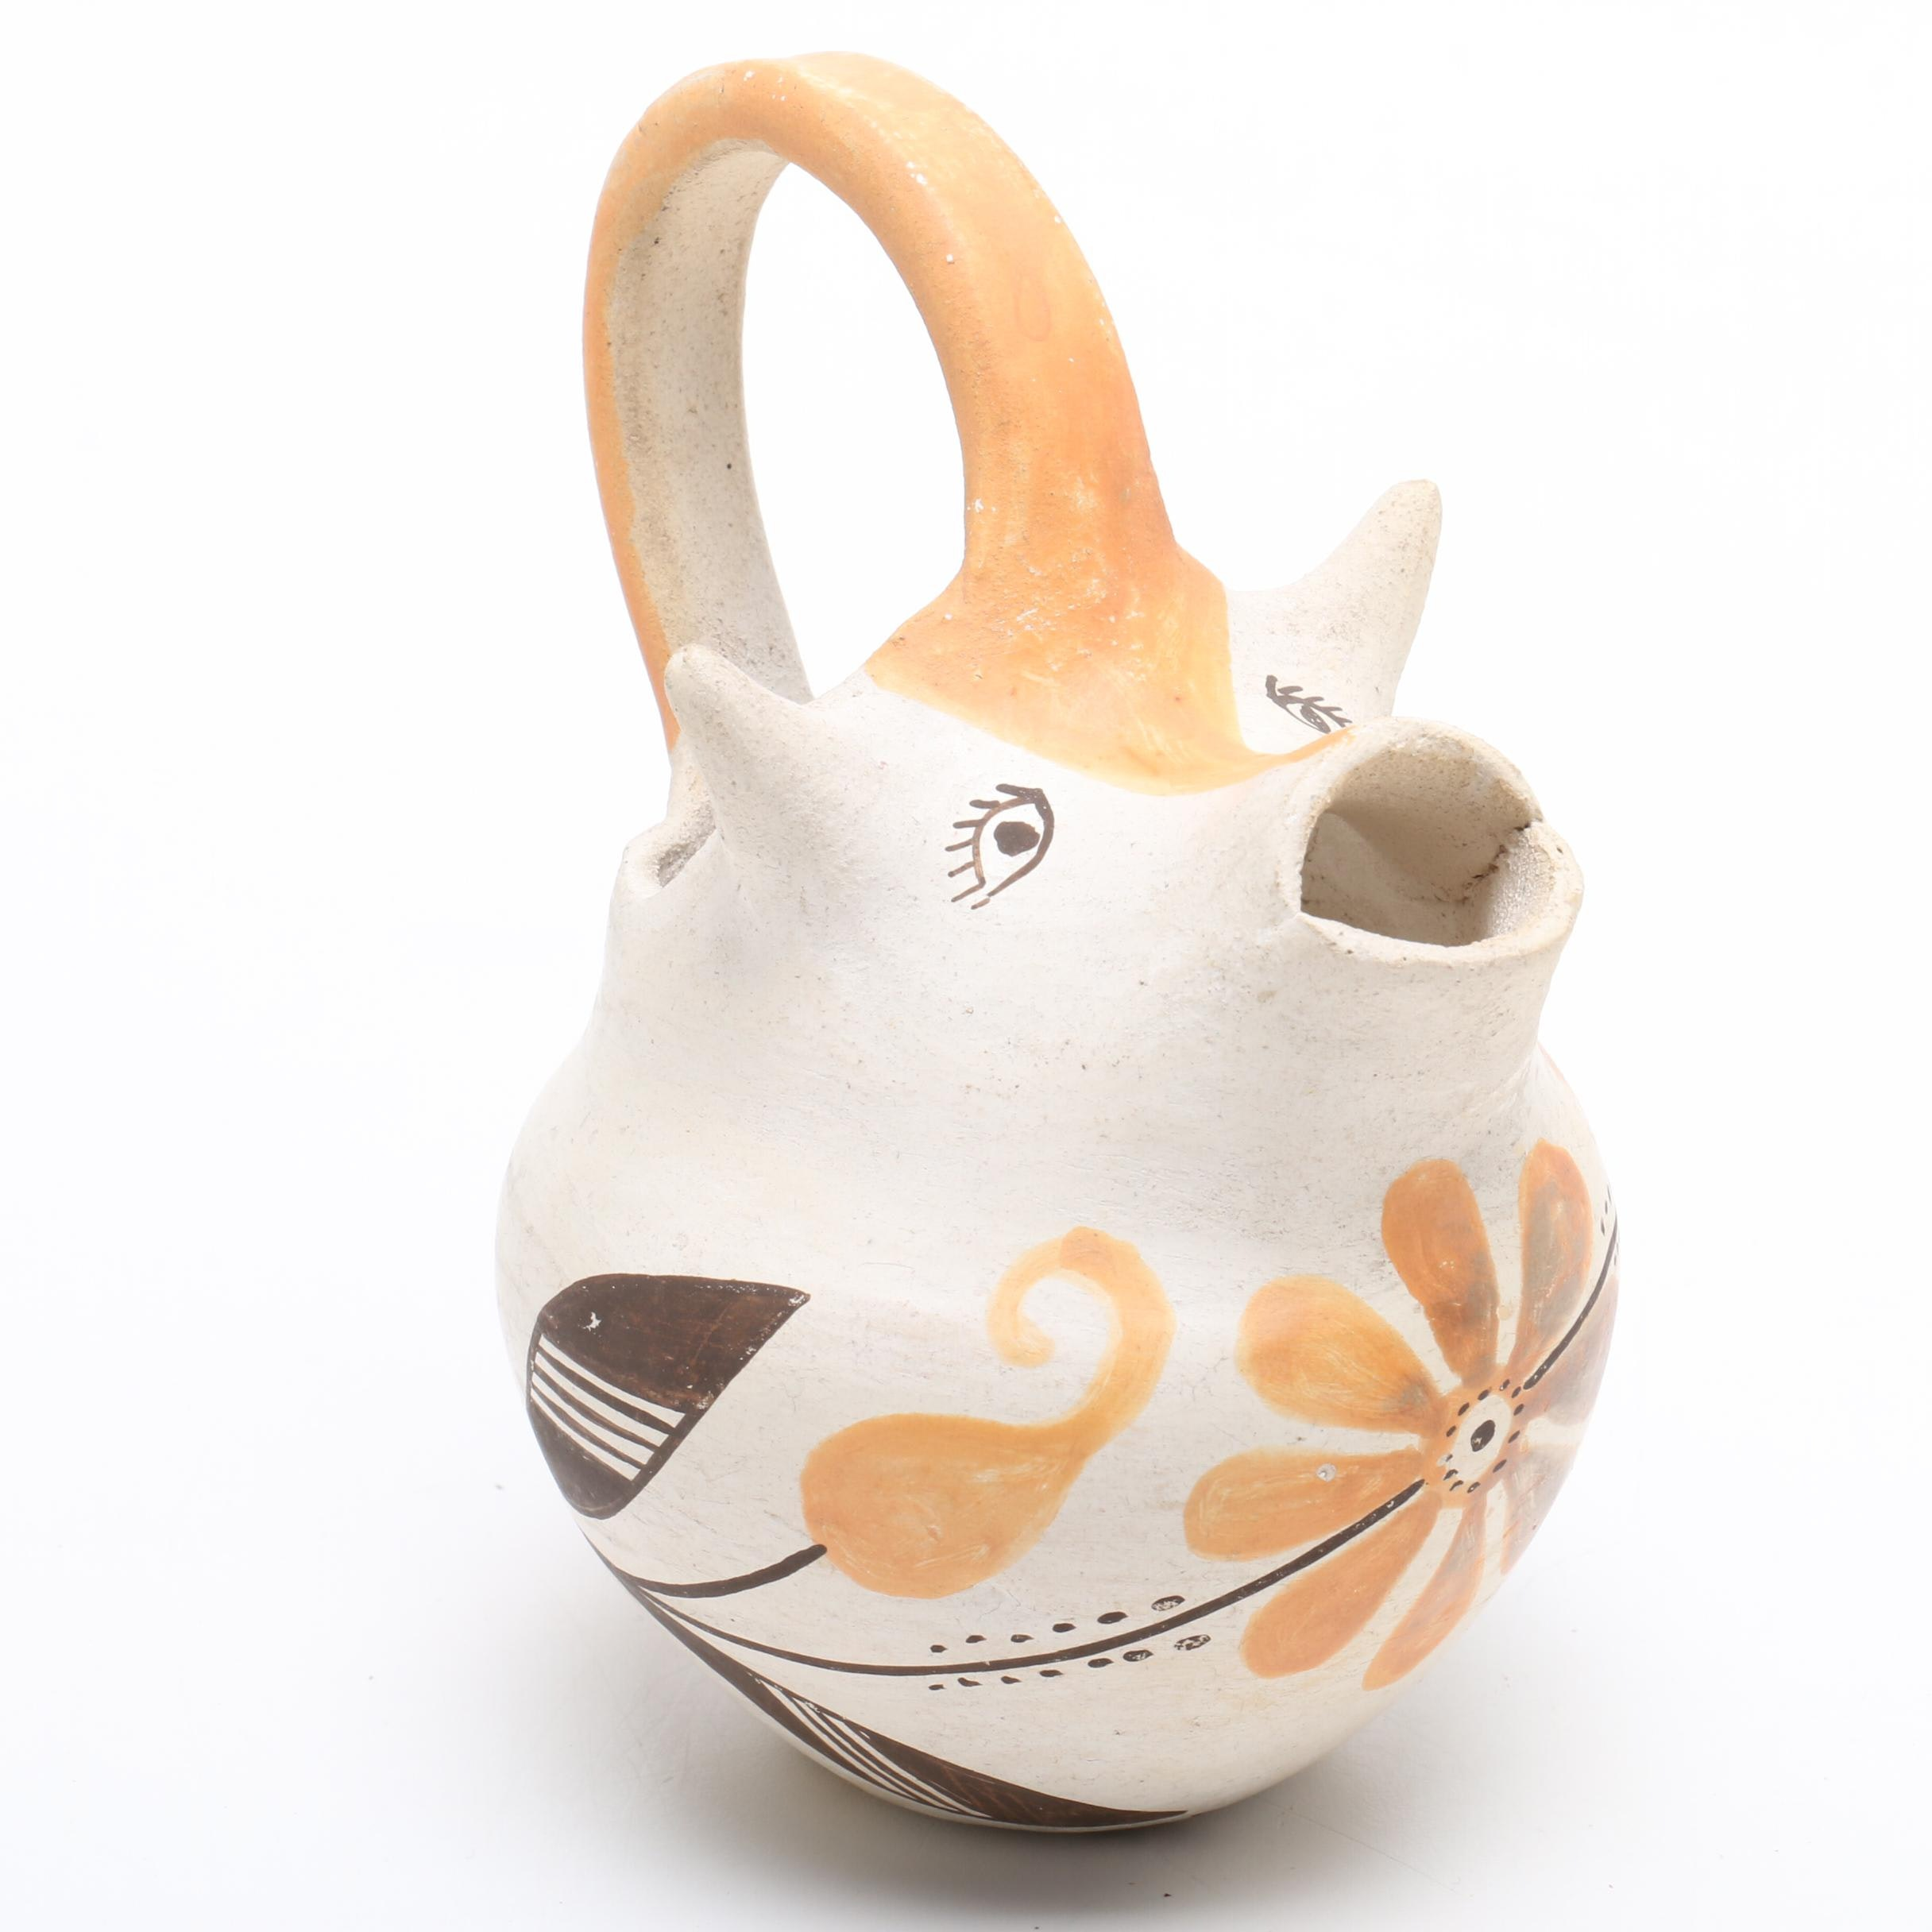 Hand-Painted Acoma Figural Earthenware Pitcher Vase